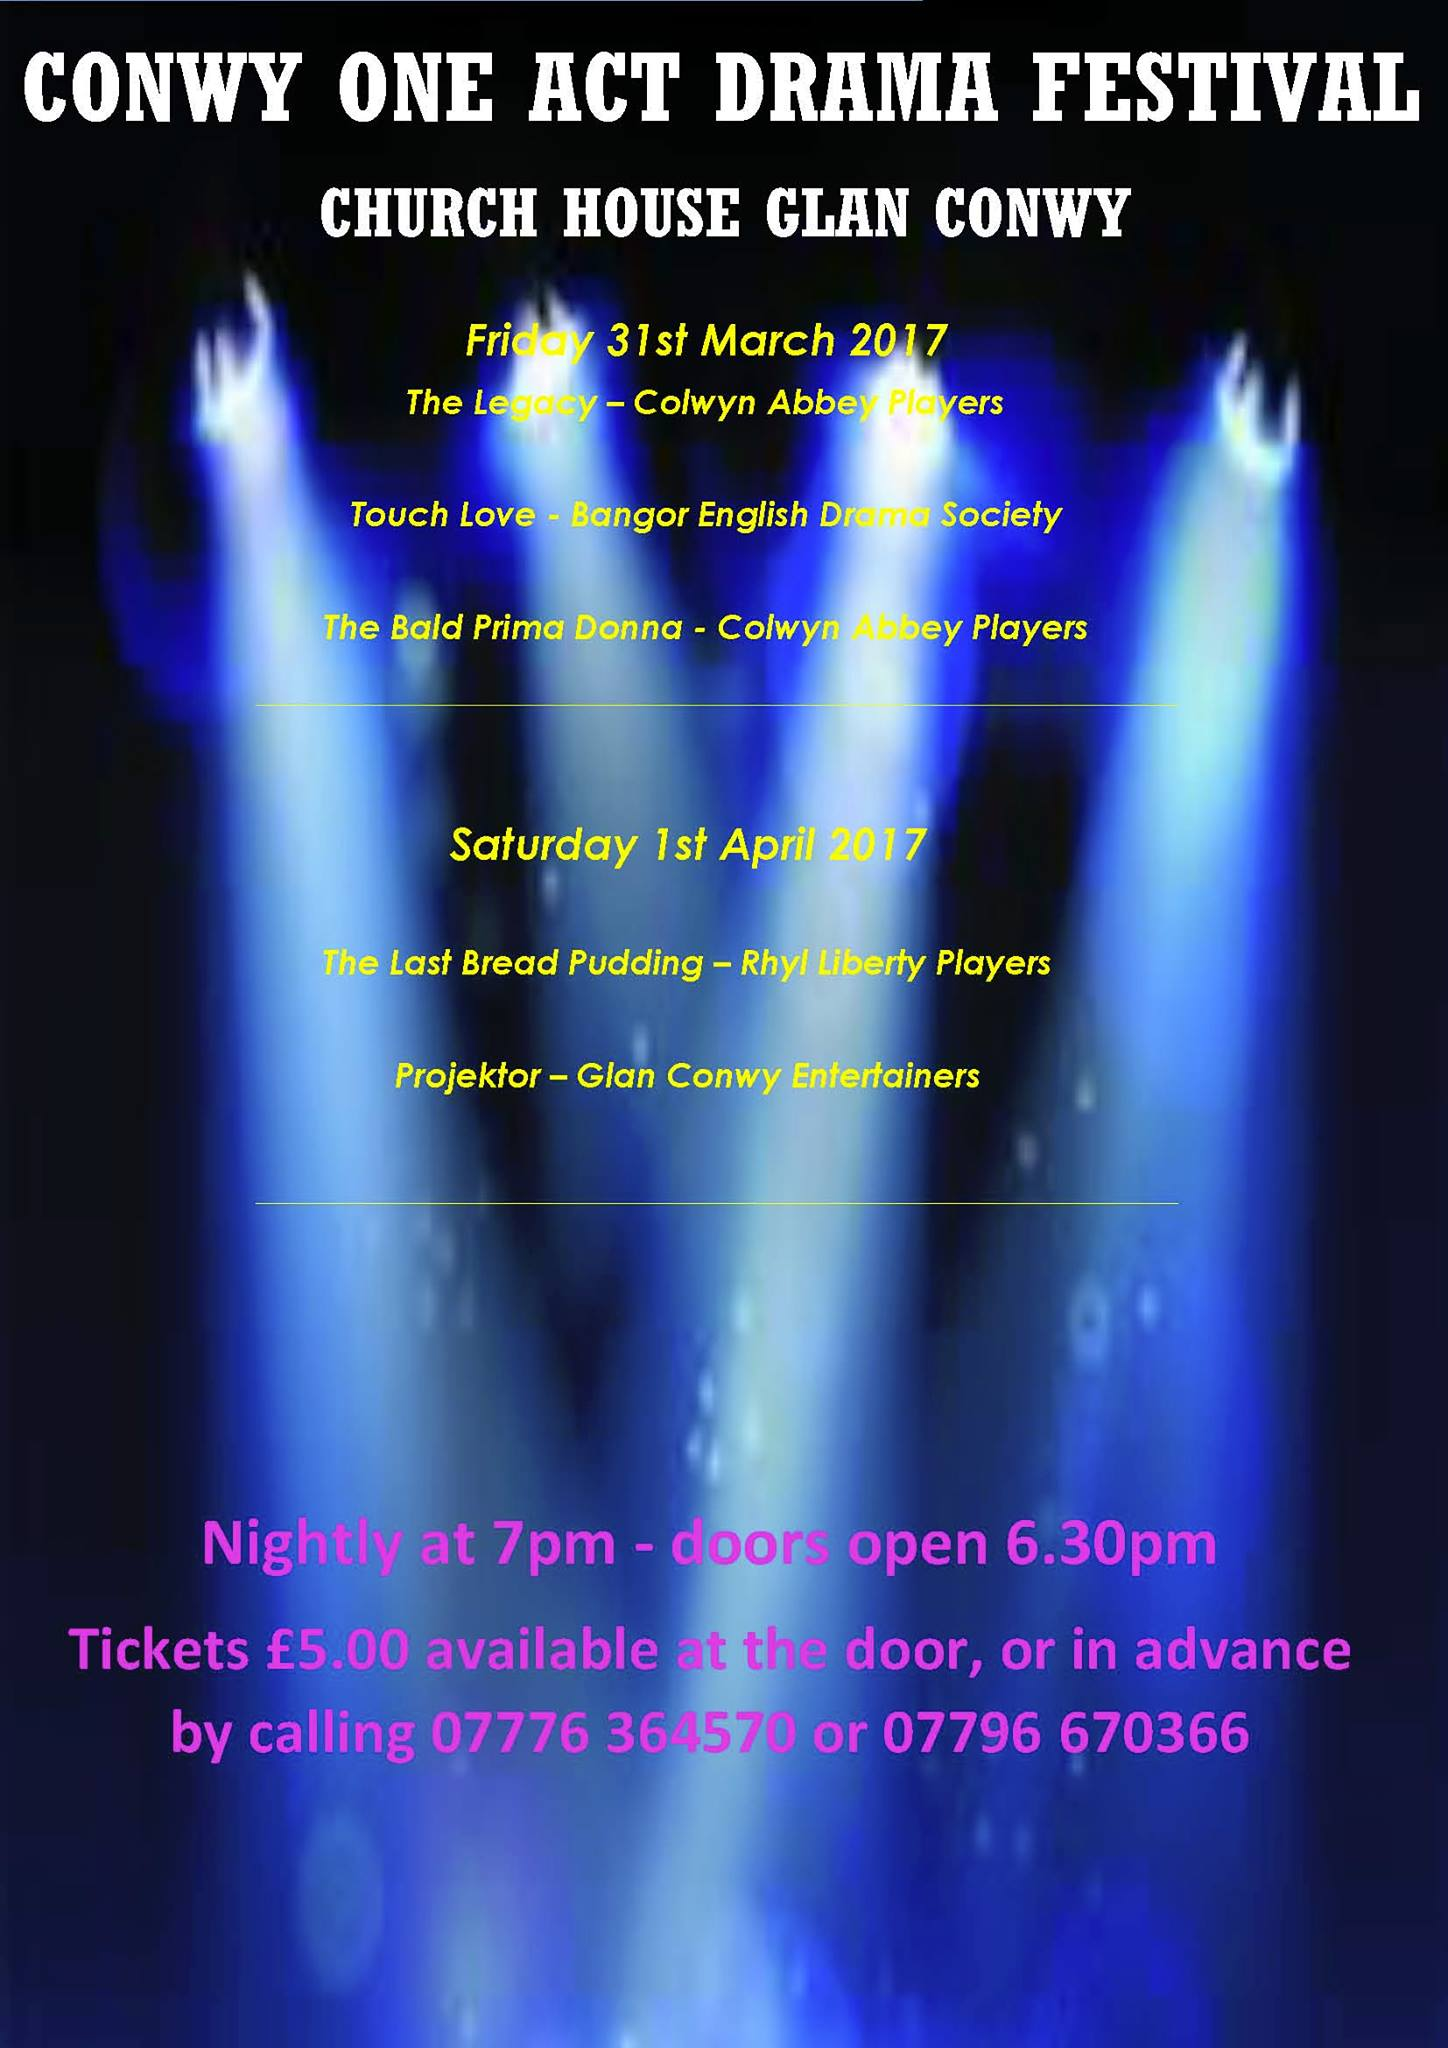 The 2017 Conwy One-Act Play Festival